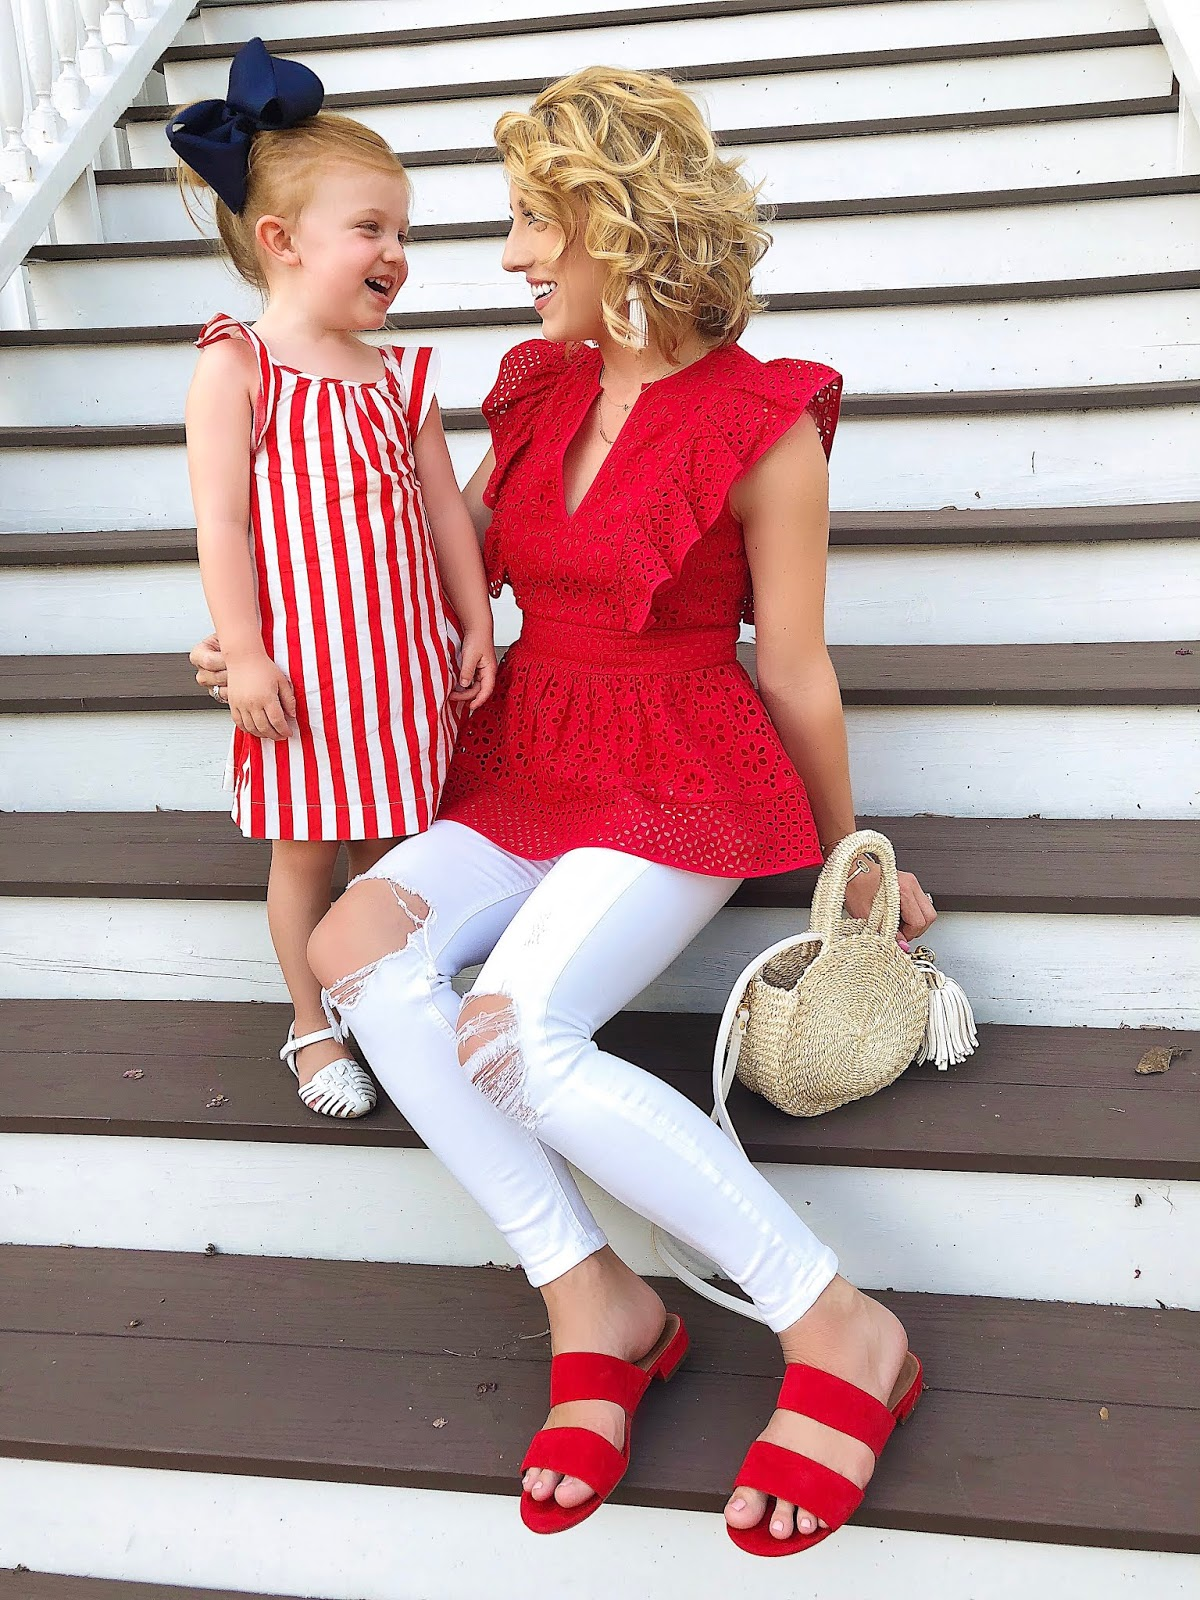 Mommy & Me in Red: Under $100 Eyelet Peplum Top + Girls J.Crew Stripe Dress - Something Delightful Blog